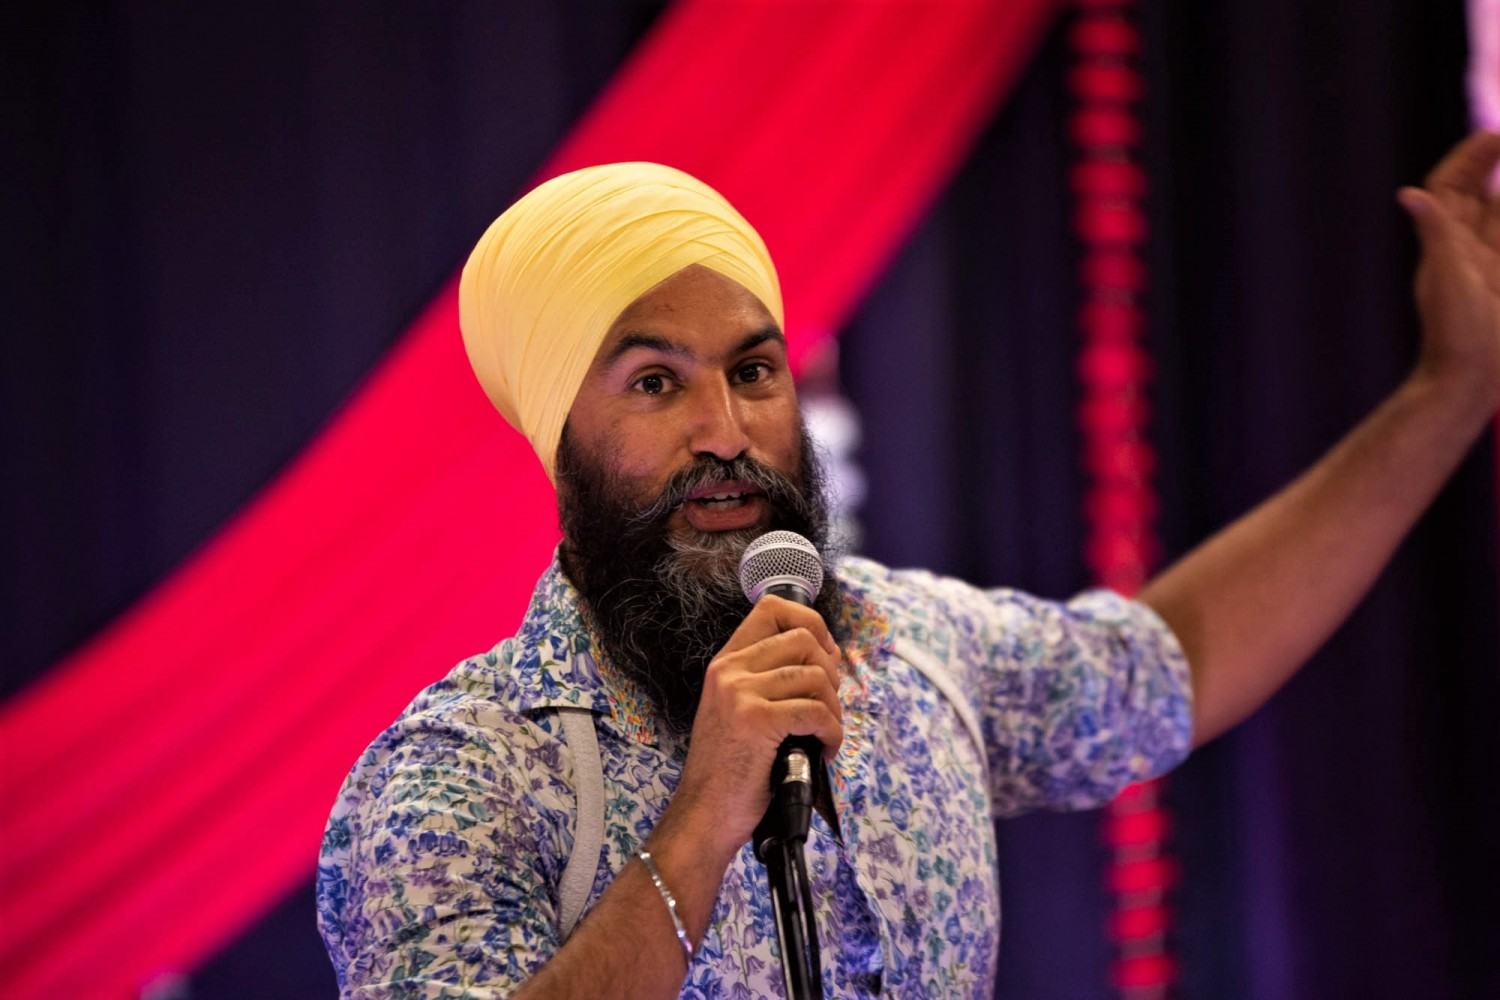 Singh's NDP finally completes slate of federal candidates in Mississauga after slow start